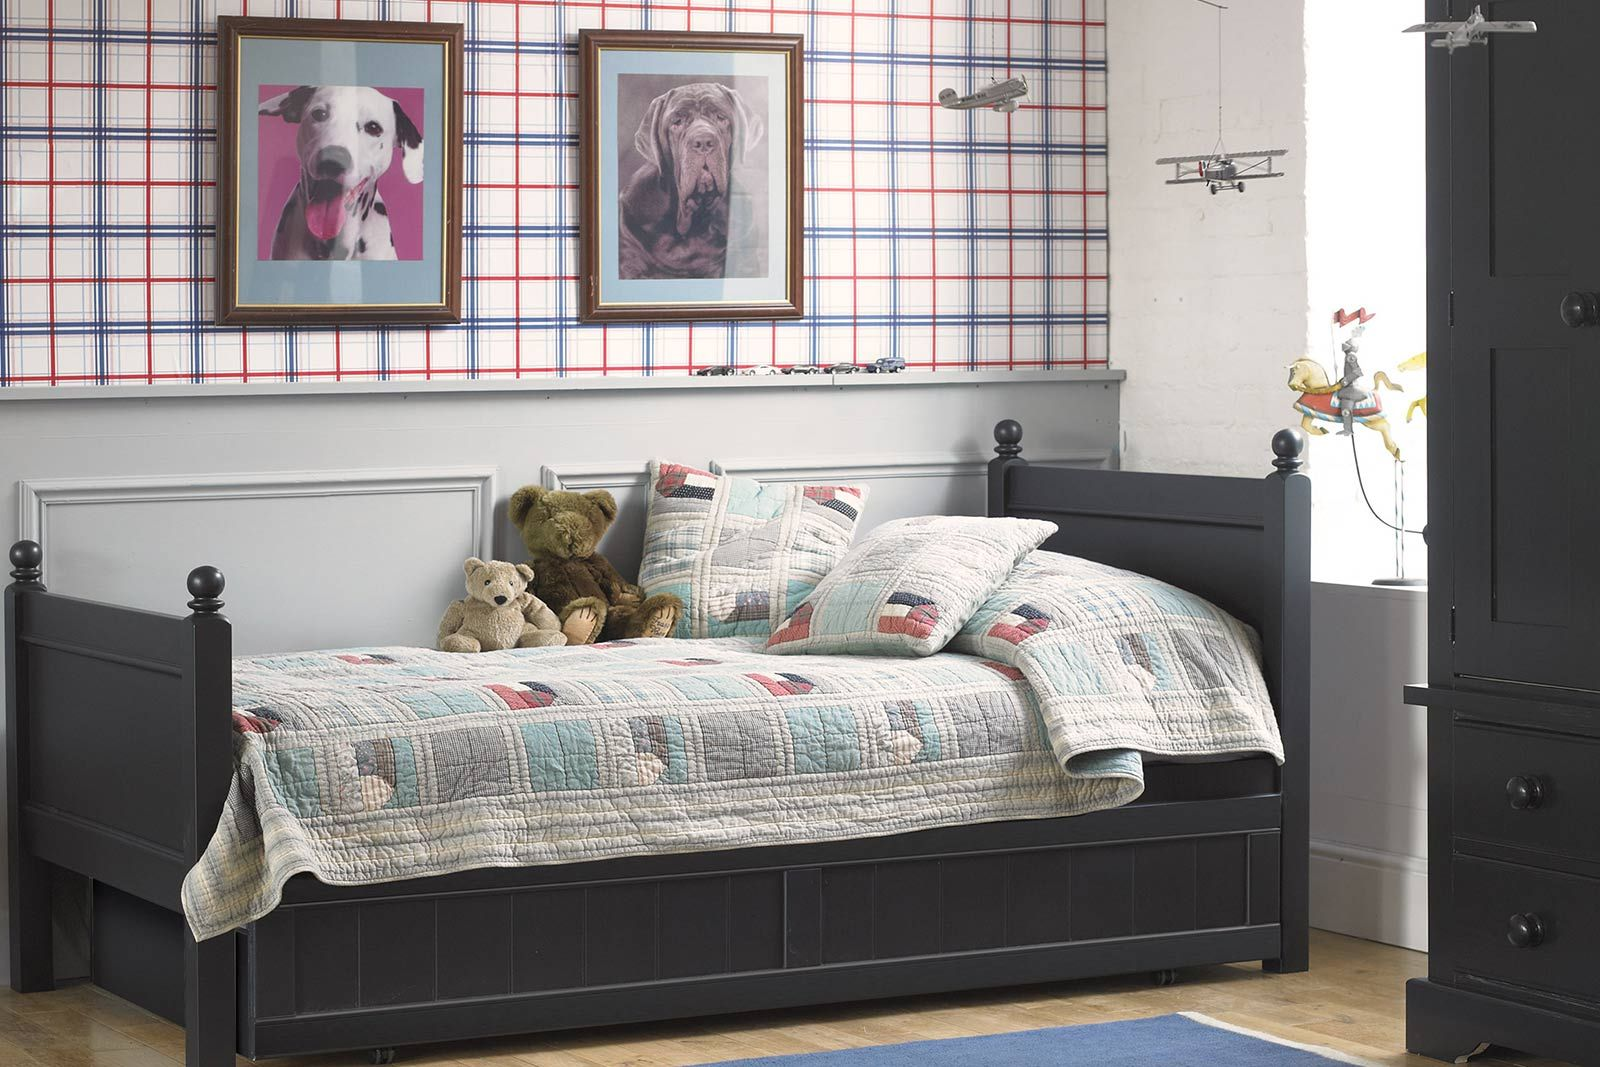 Fargo Single Bed With Storage And Sleepover Trundle Bed Painswick Blue Classic Kids Storage Beds Little Folks Furniture